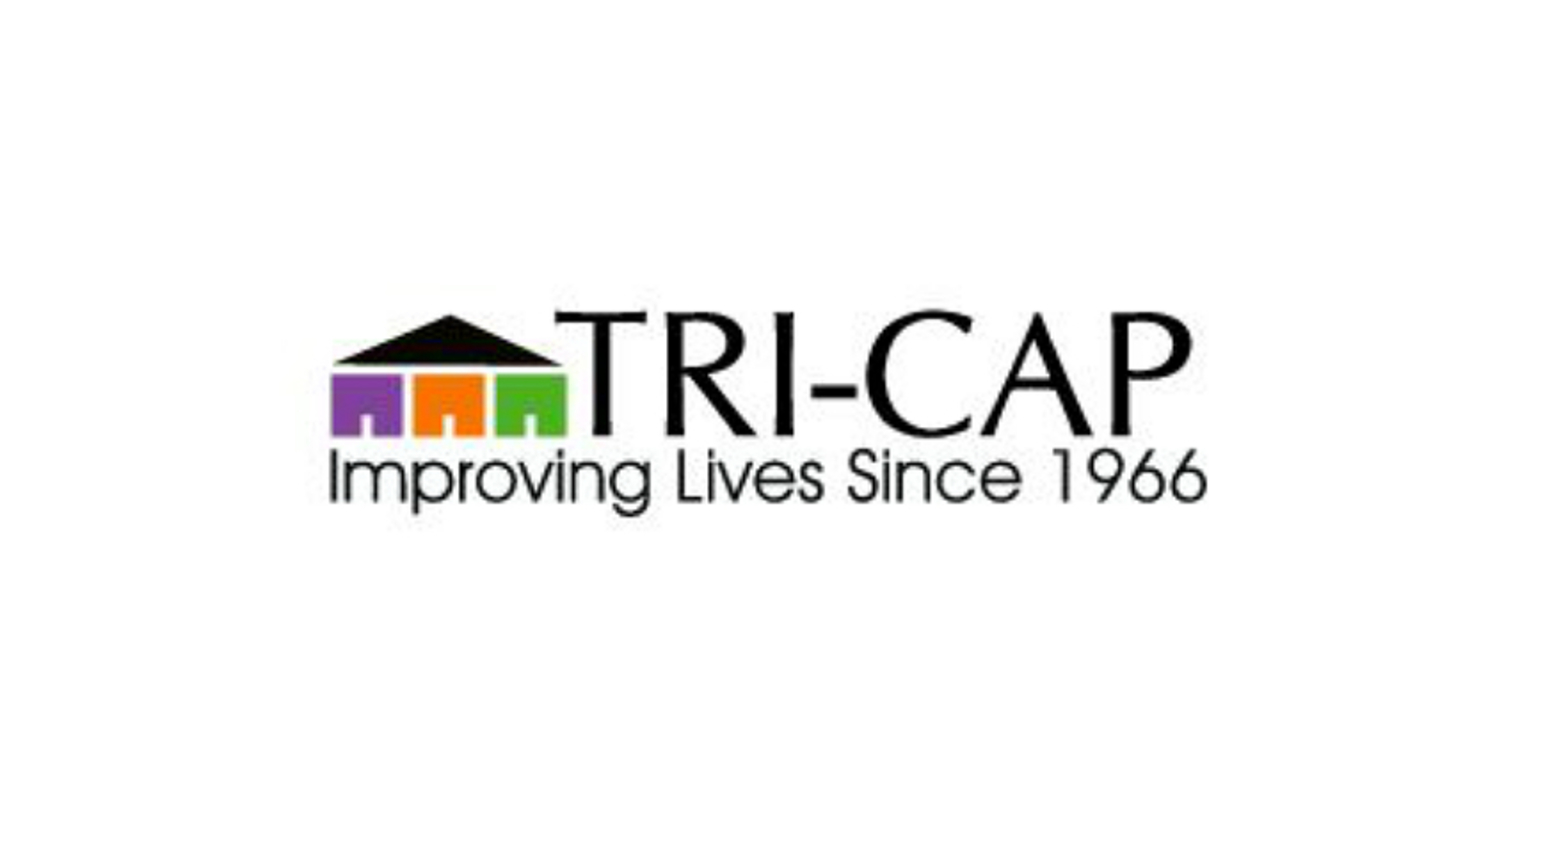 TRI-CAP Has Been Accredited by Prevent Child Abuse America